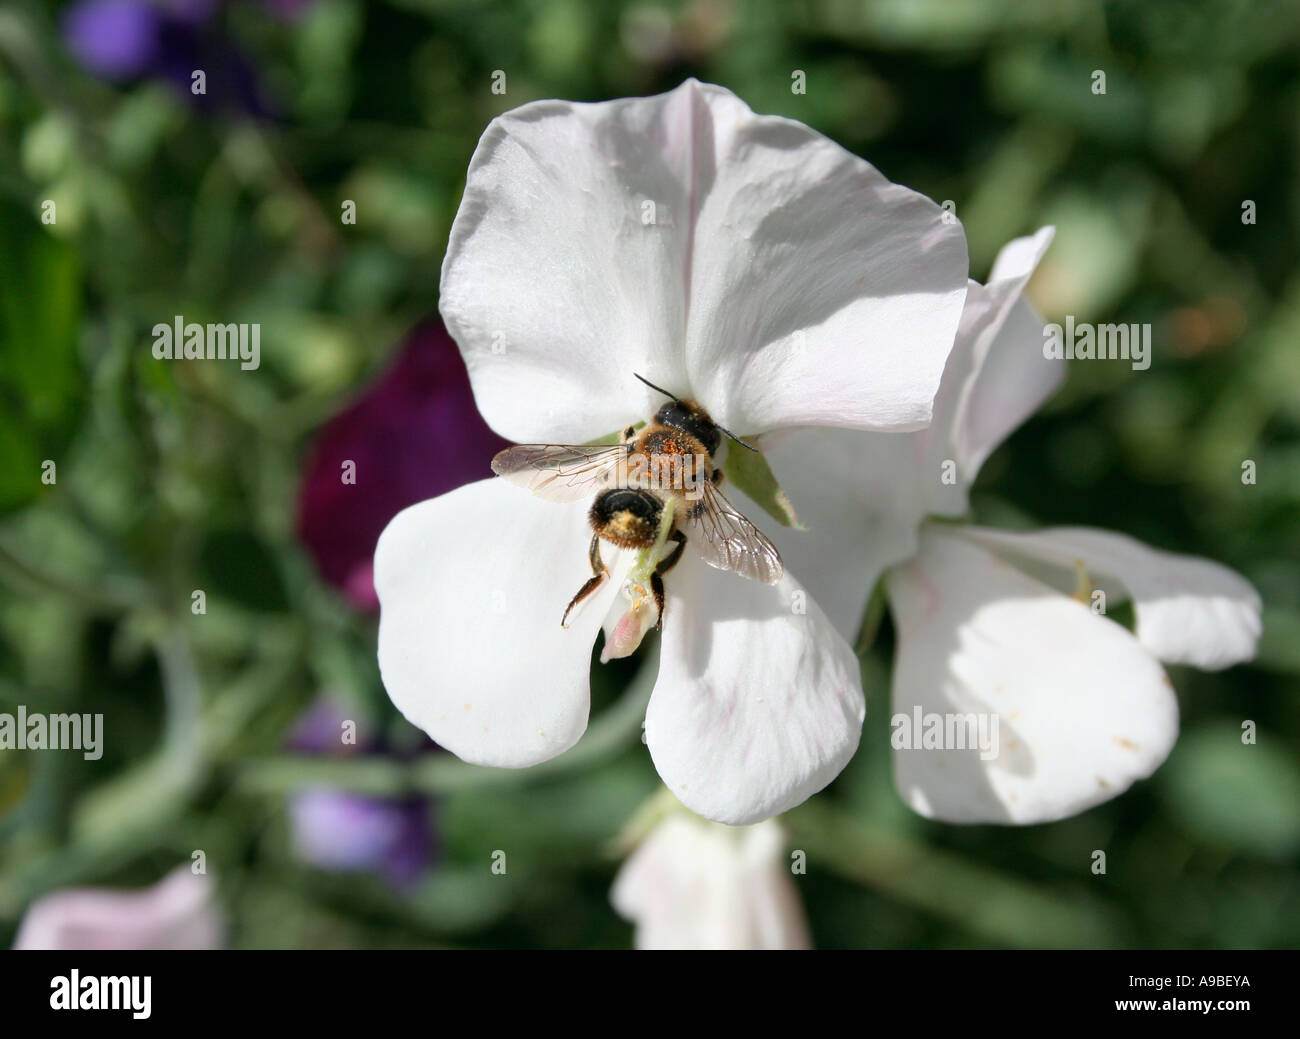 Bee Collecting Pollen From A White Sweet Pea Flower European Stock